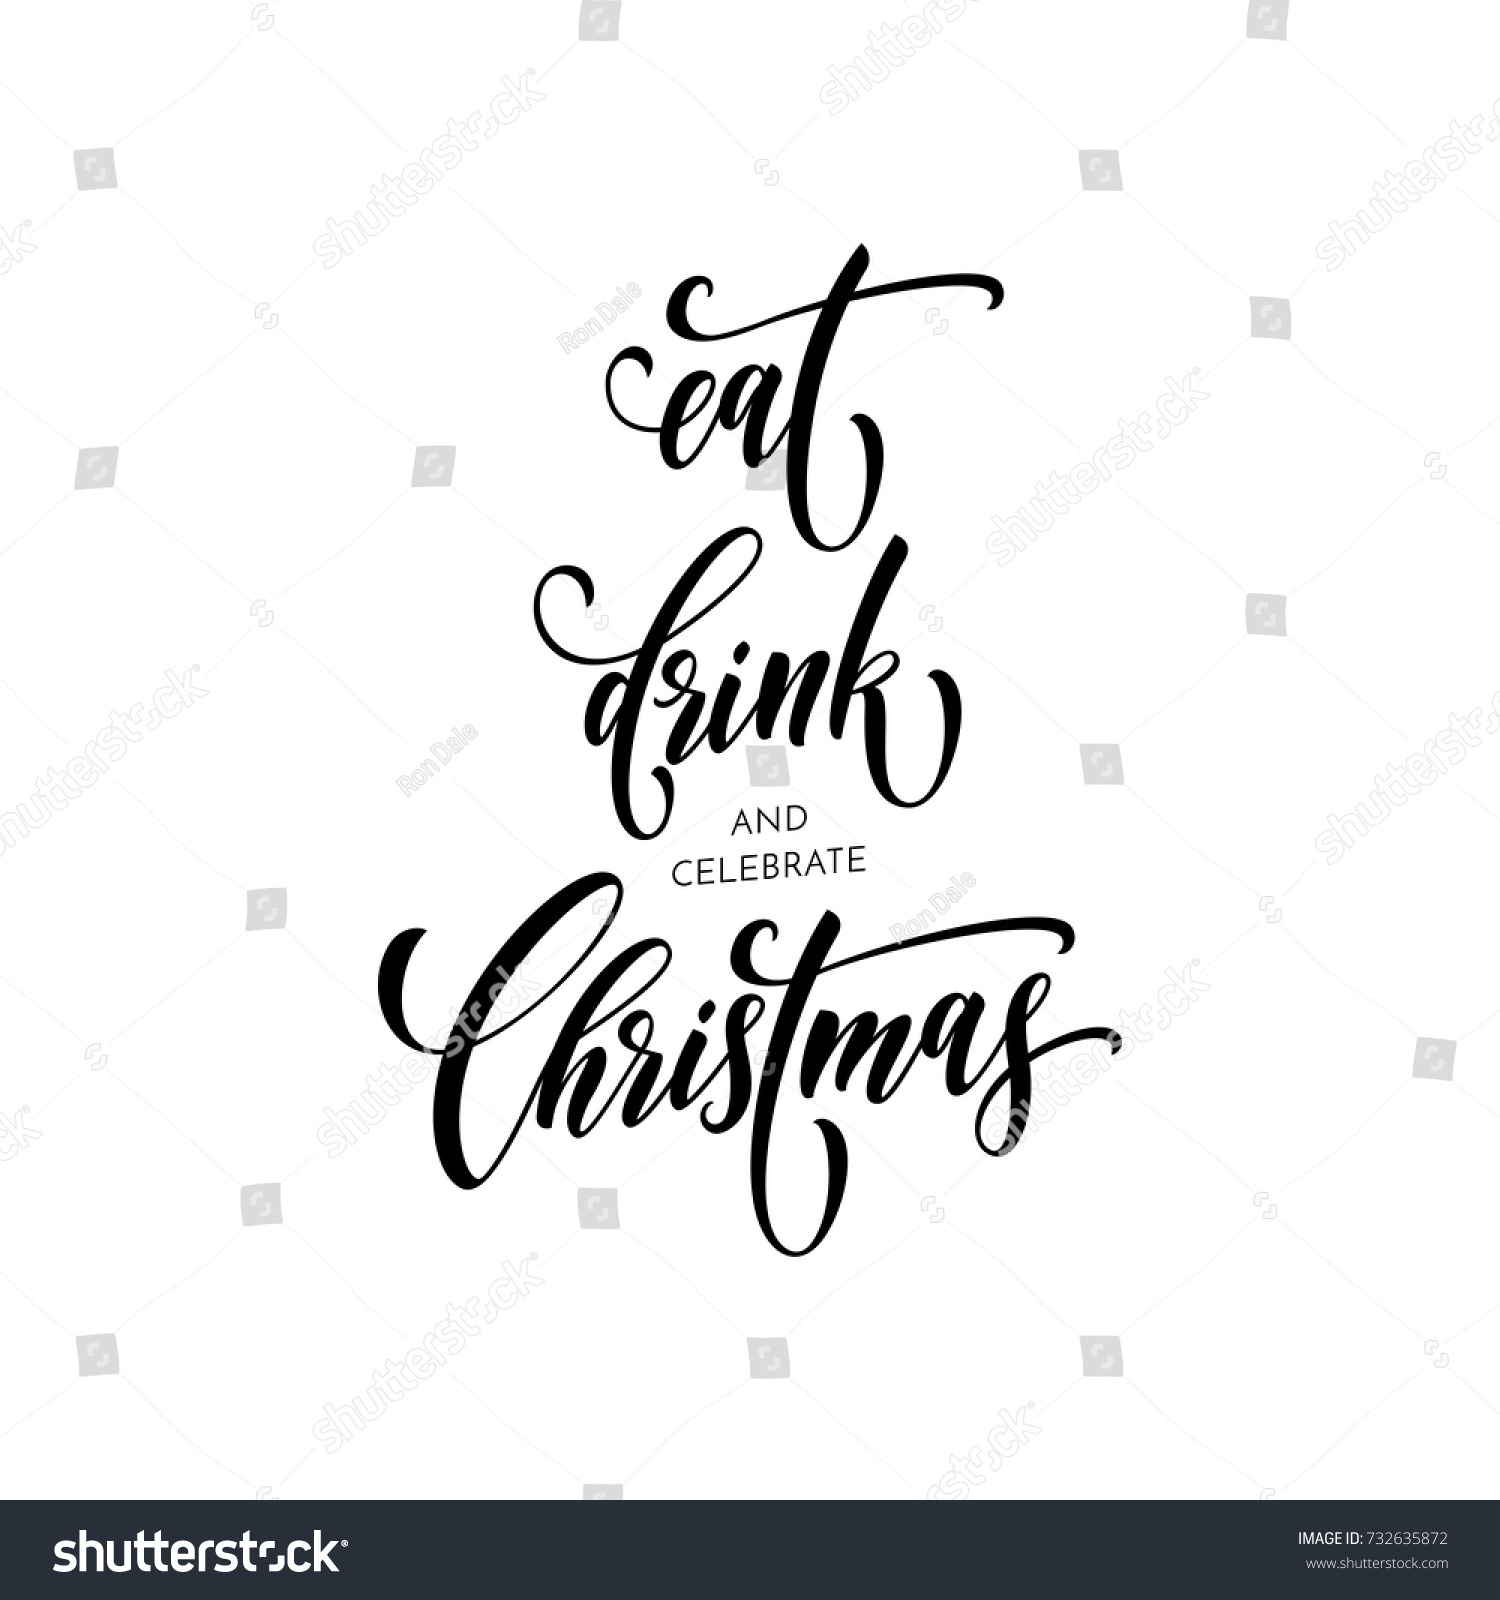 Christmas Eat Drink And Celebrate Christmas Quote For Greeting Card. Vector  Calligraphy Hand Drawn Brush